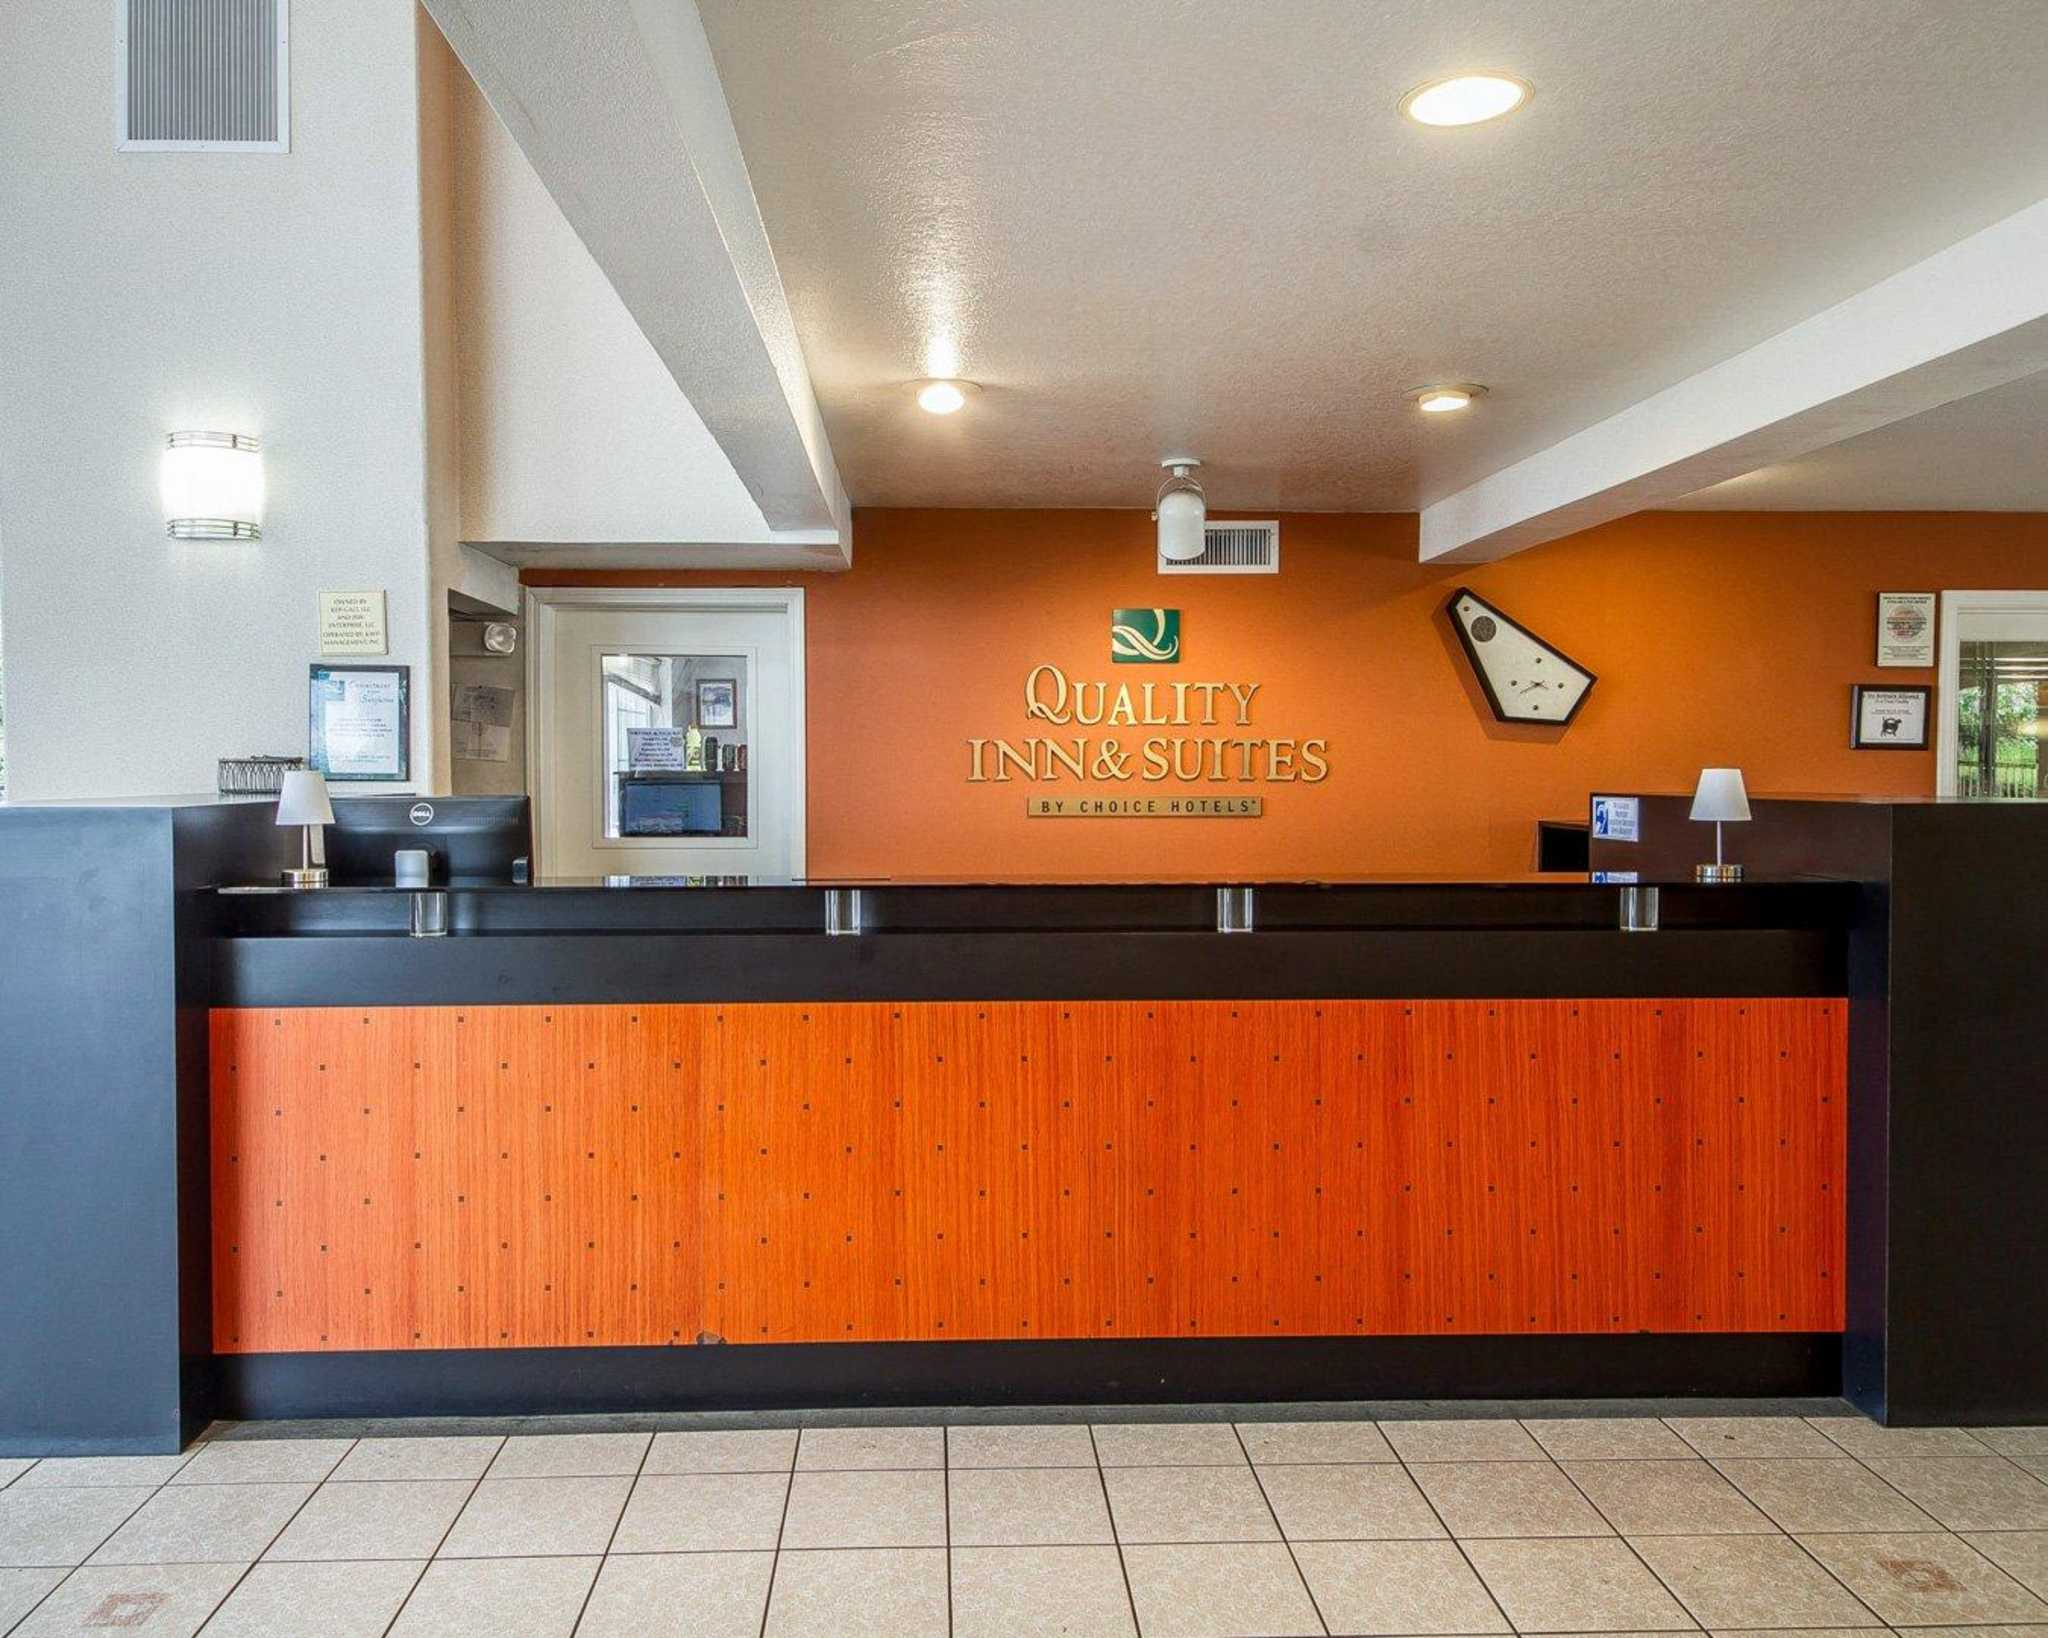 Quality Inn & Suites Lathrop image 15